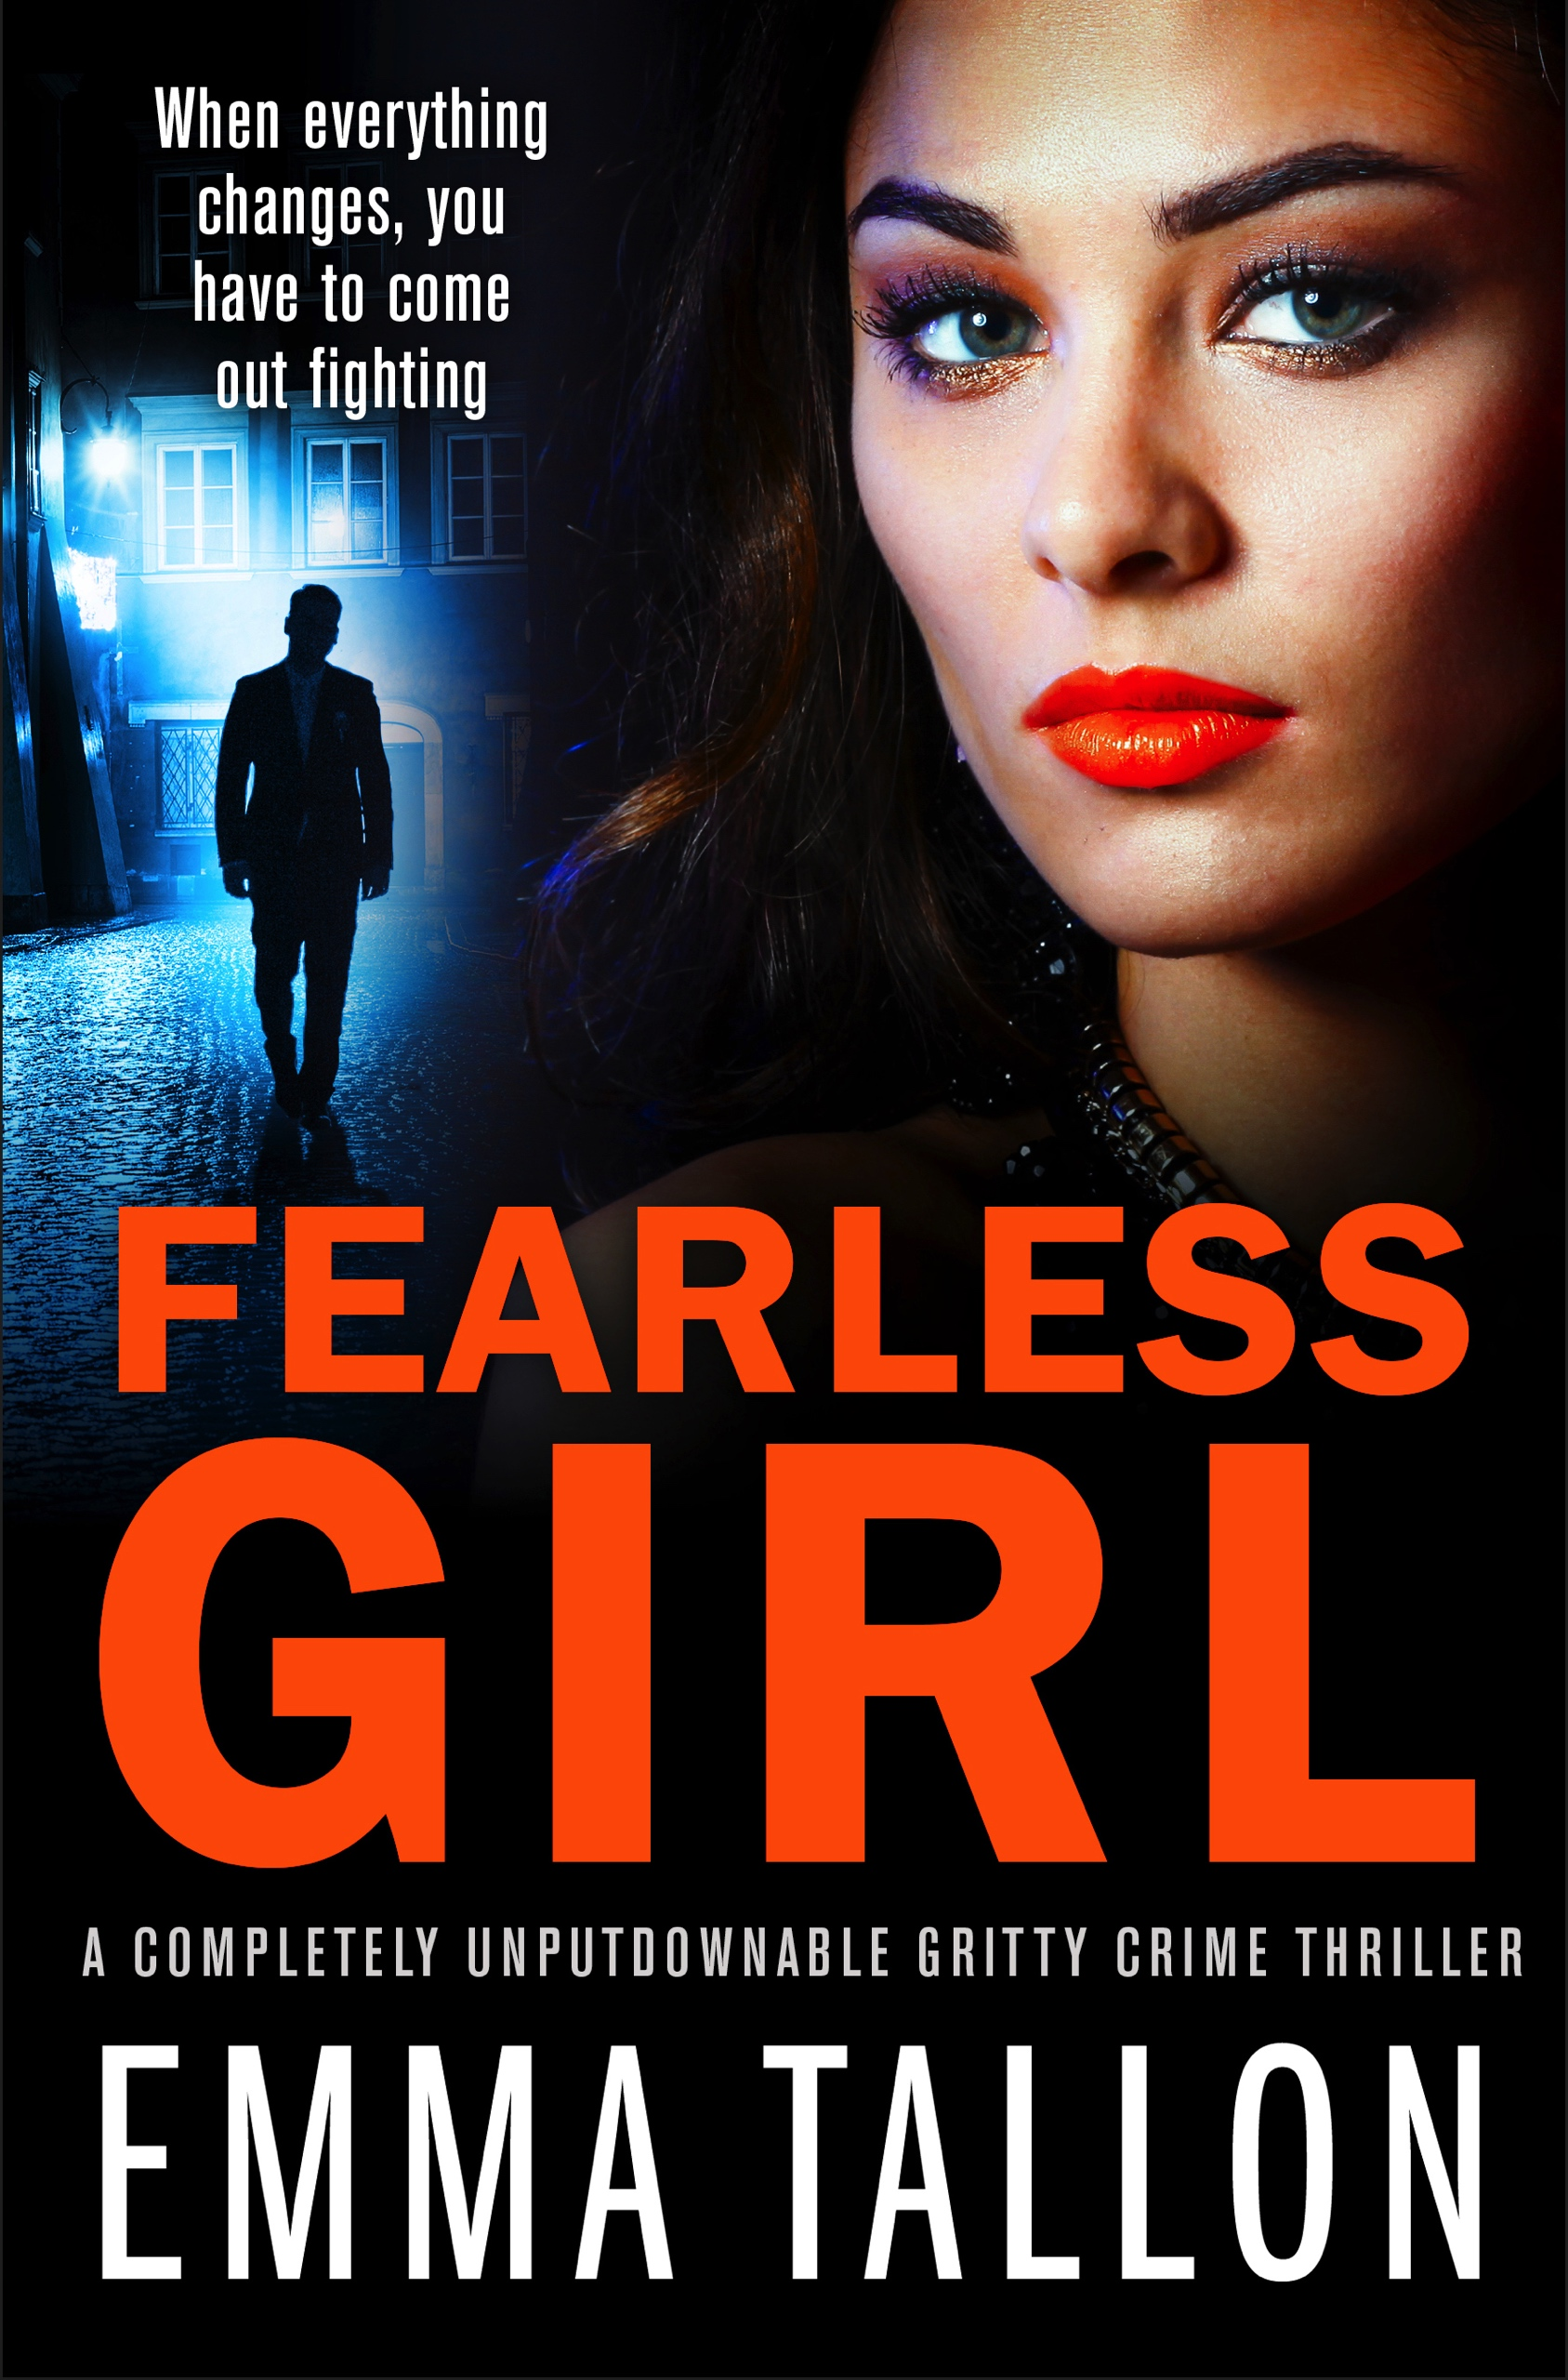 Fearless Girl book cover